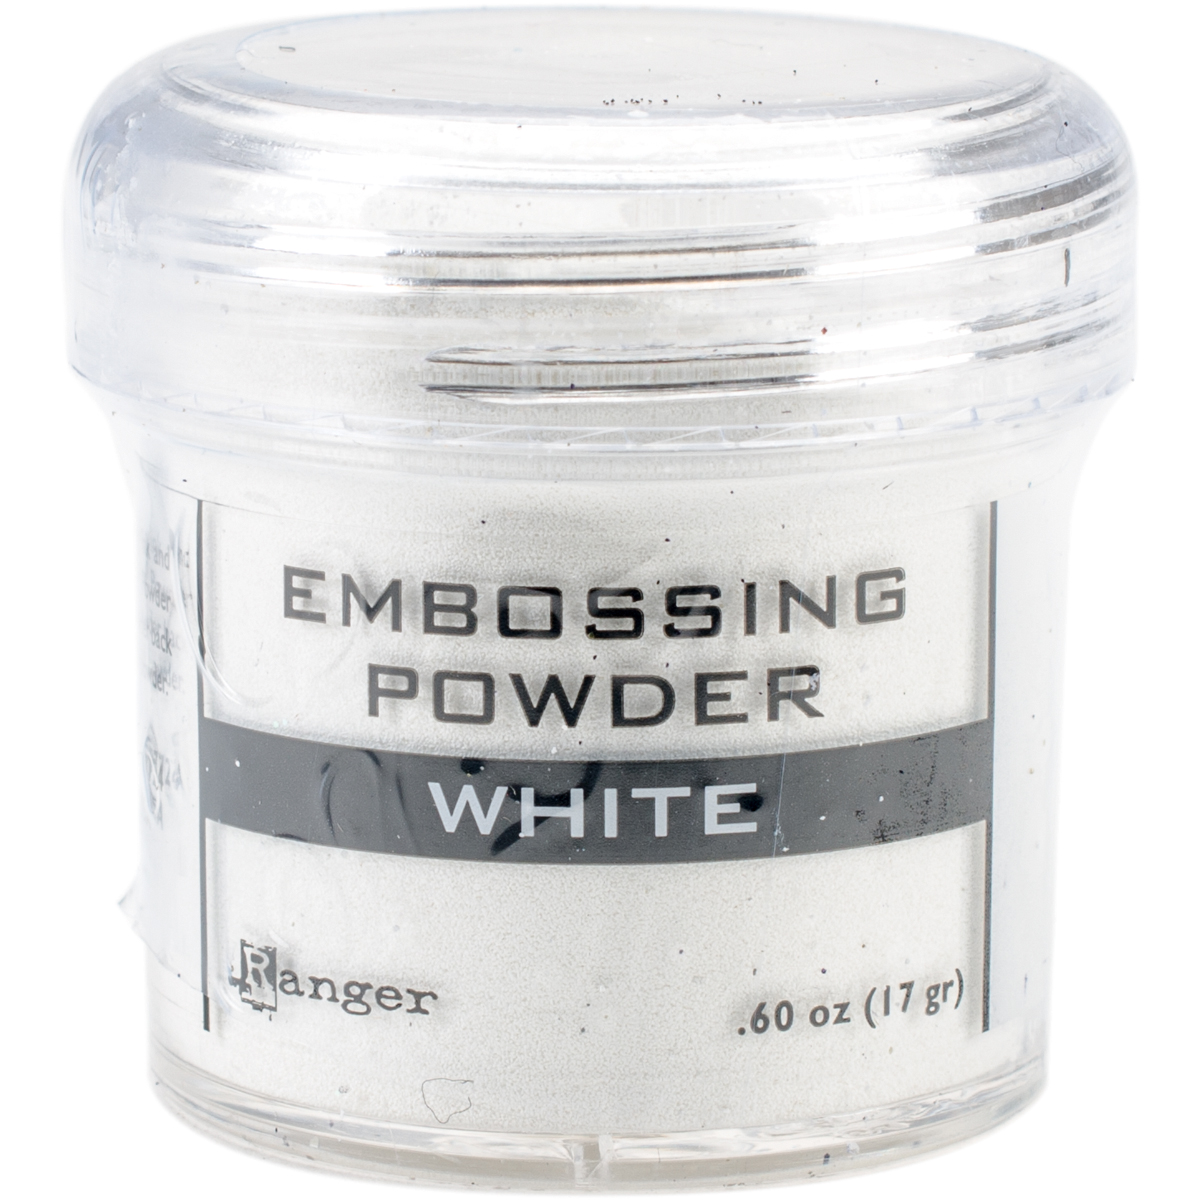 WHITE     -EMBOSSING POWDER 1OZ